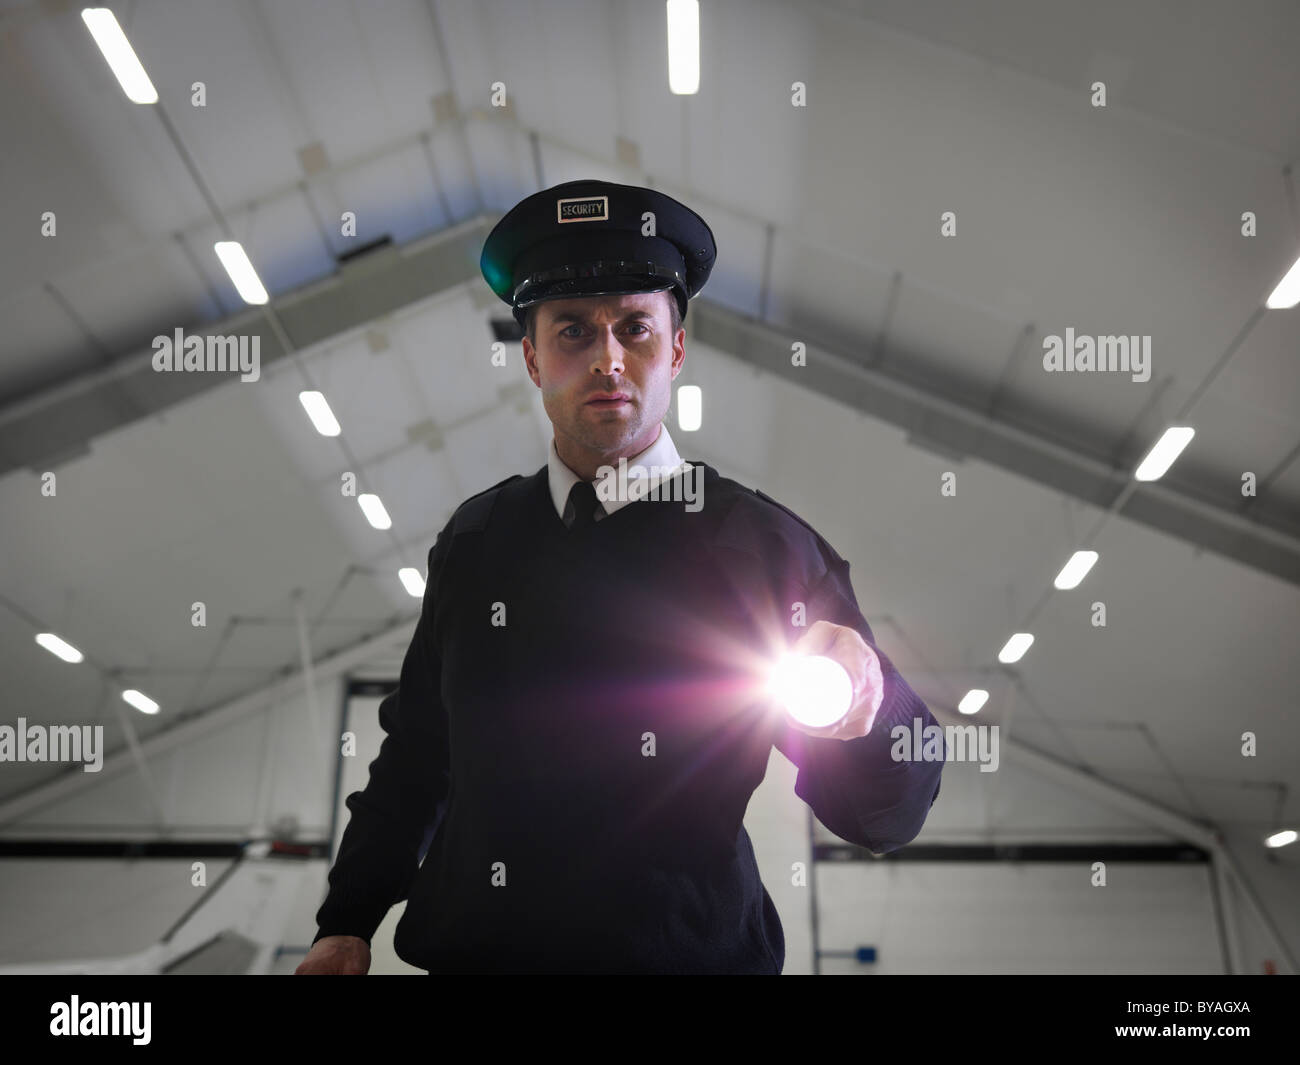 Security guard with torch in warehouse - Stock Image